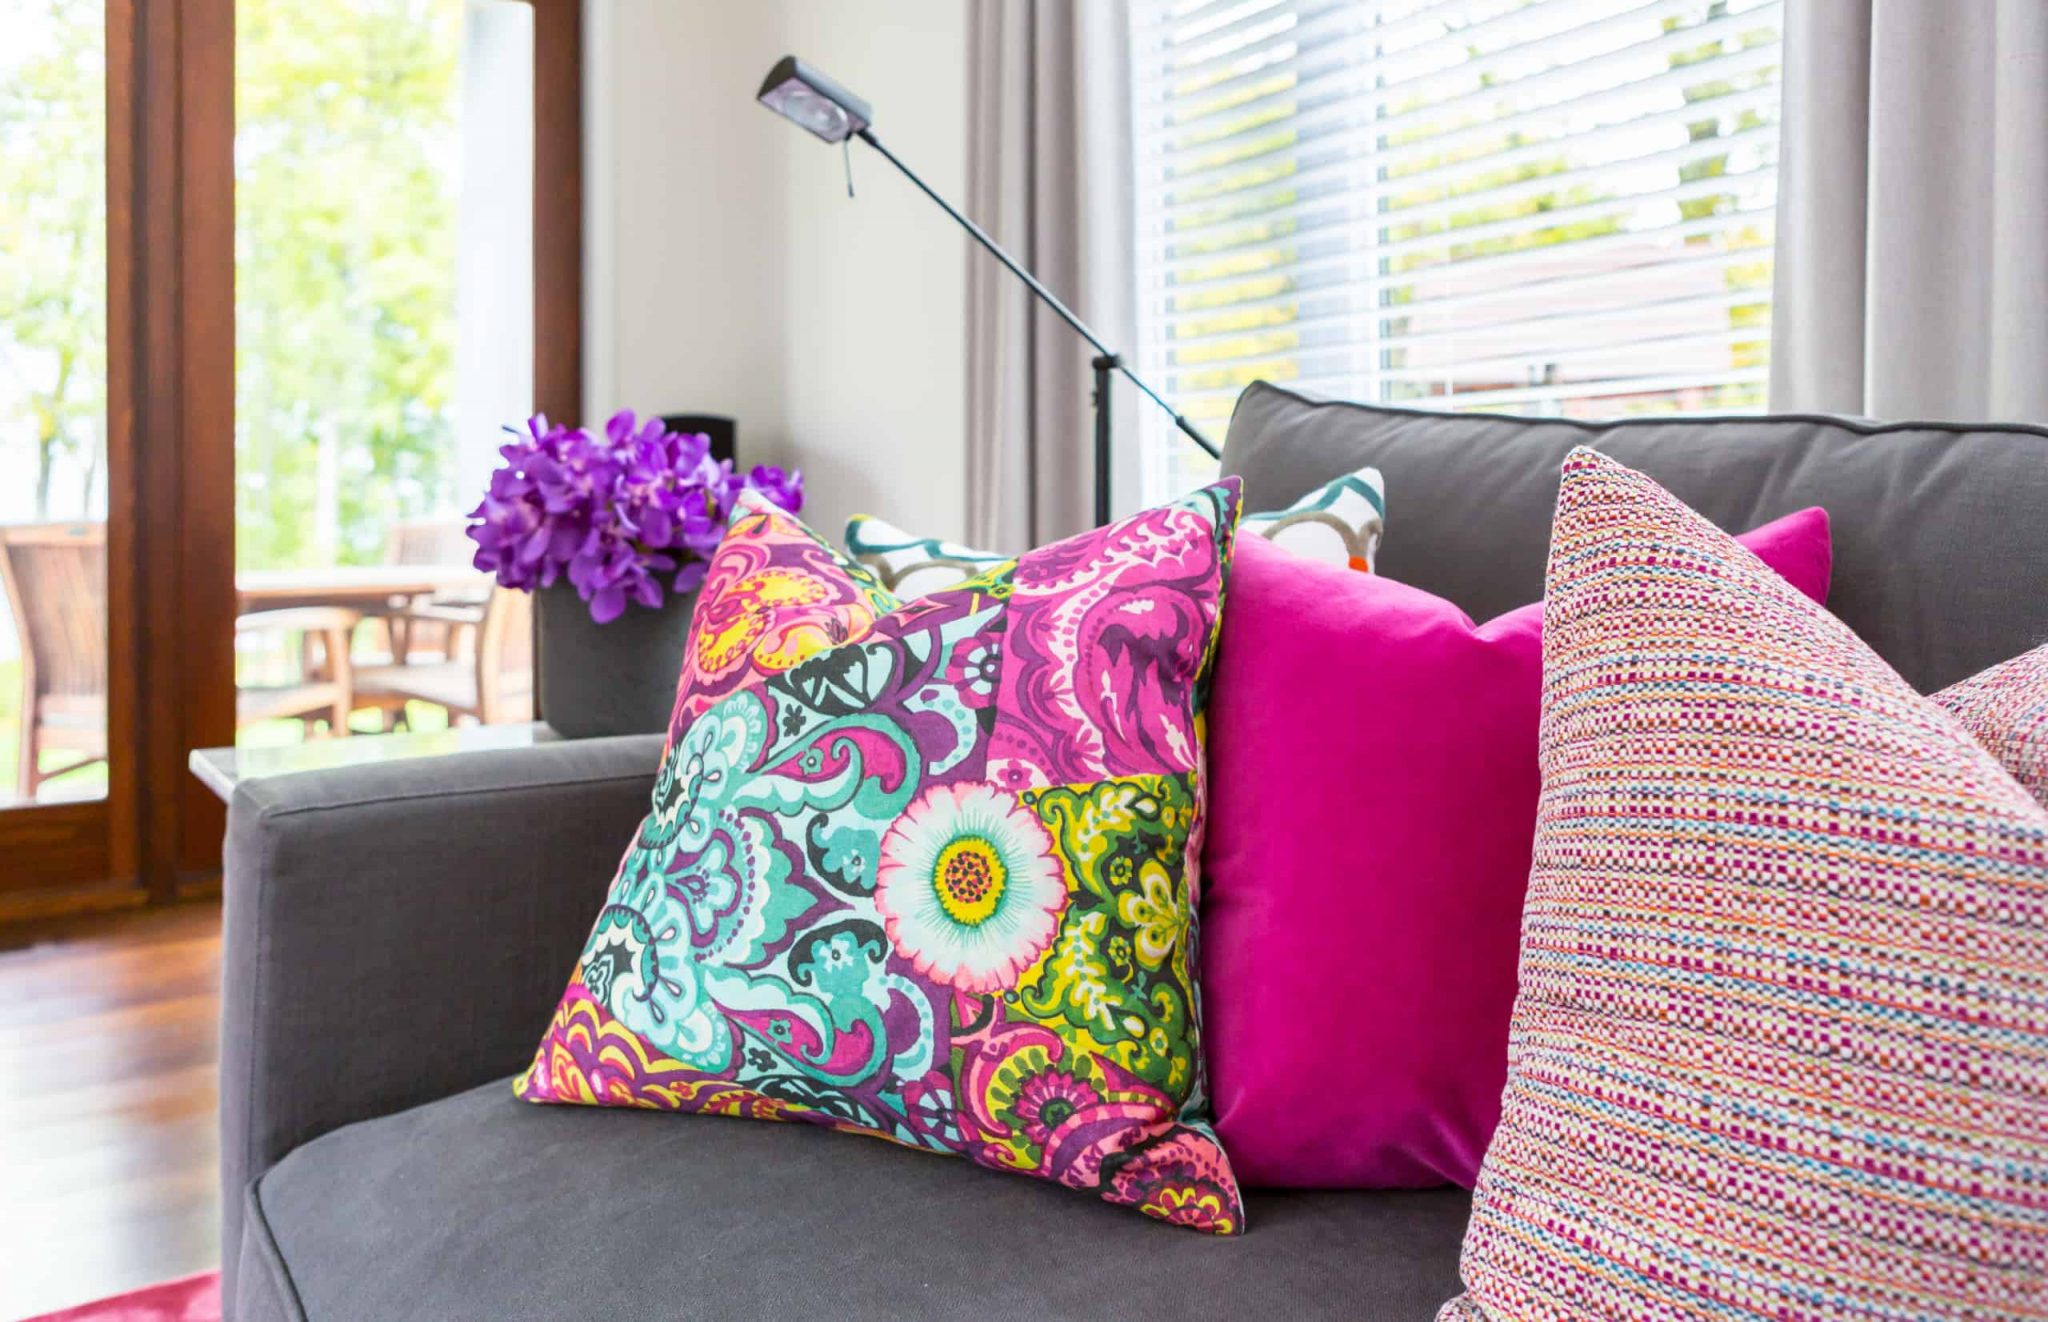 Colorful pillows on a dark gay couch